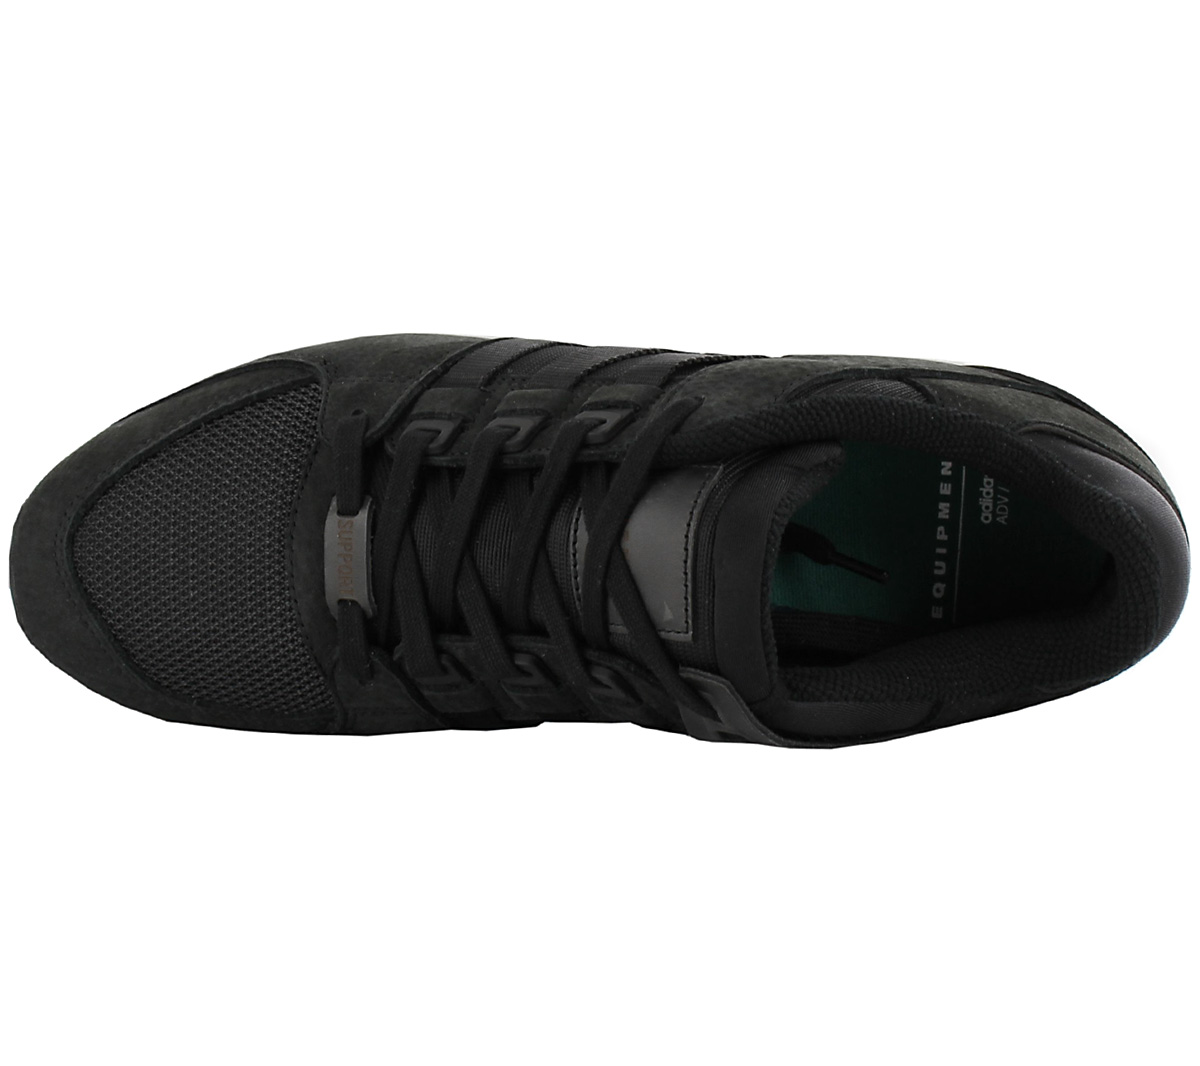 Details about NEW adidas EQT Support RF BB1312 Men''s Shoes Trainers Sneakers SALE